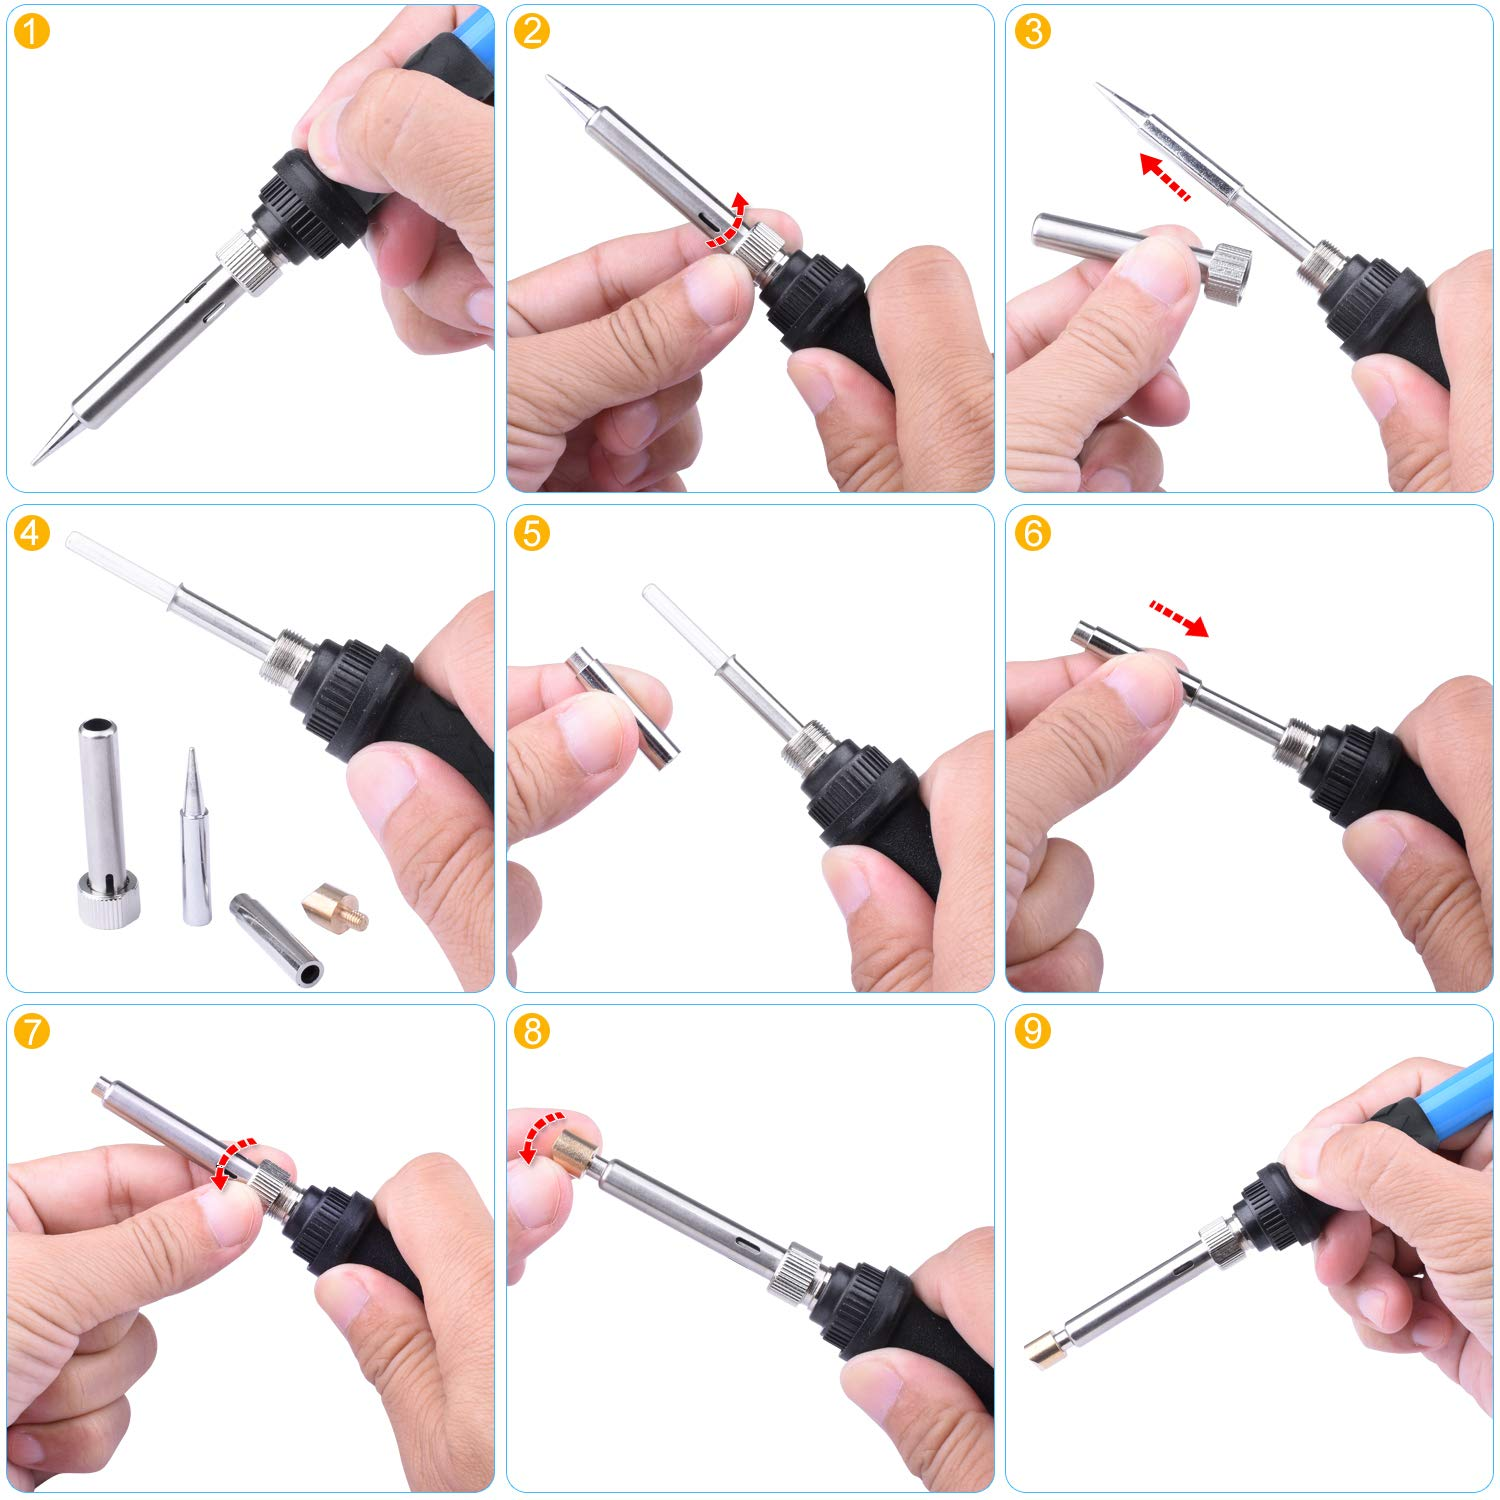 Digital LCD Display 180/°C- 480/°C Adjustable Temperature 80W Soldering Pen and Tips Stencils for Welding Carving Umitive 94Pcs Wood Burning Pyrography Pen Kit Power Cable with Switch